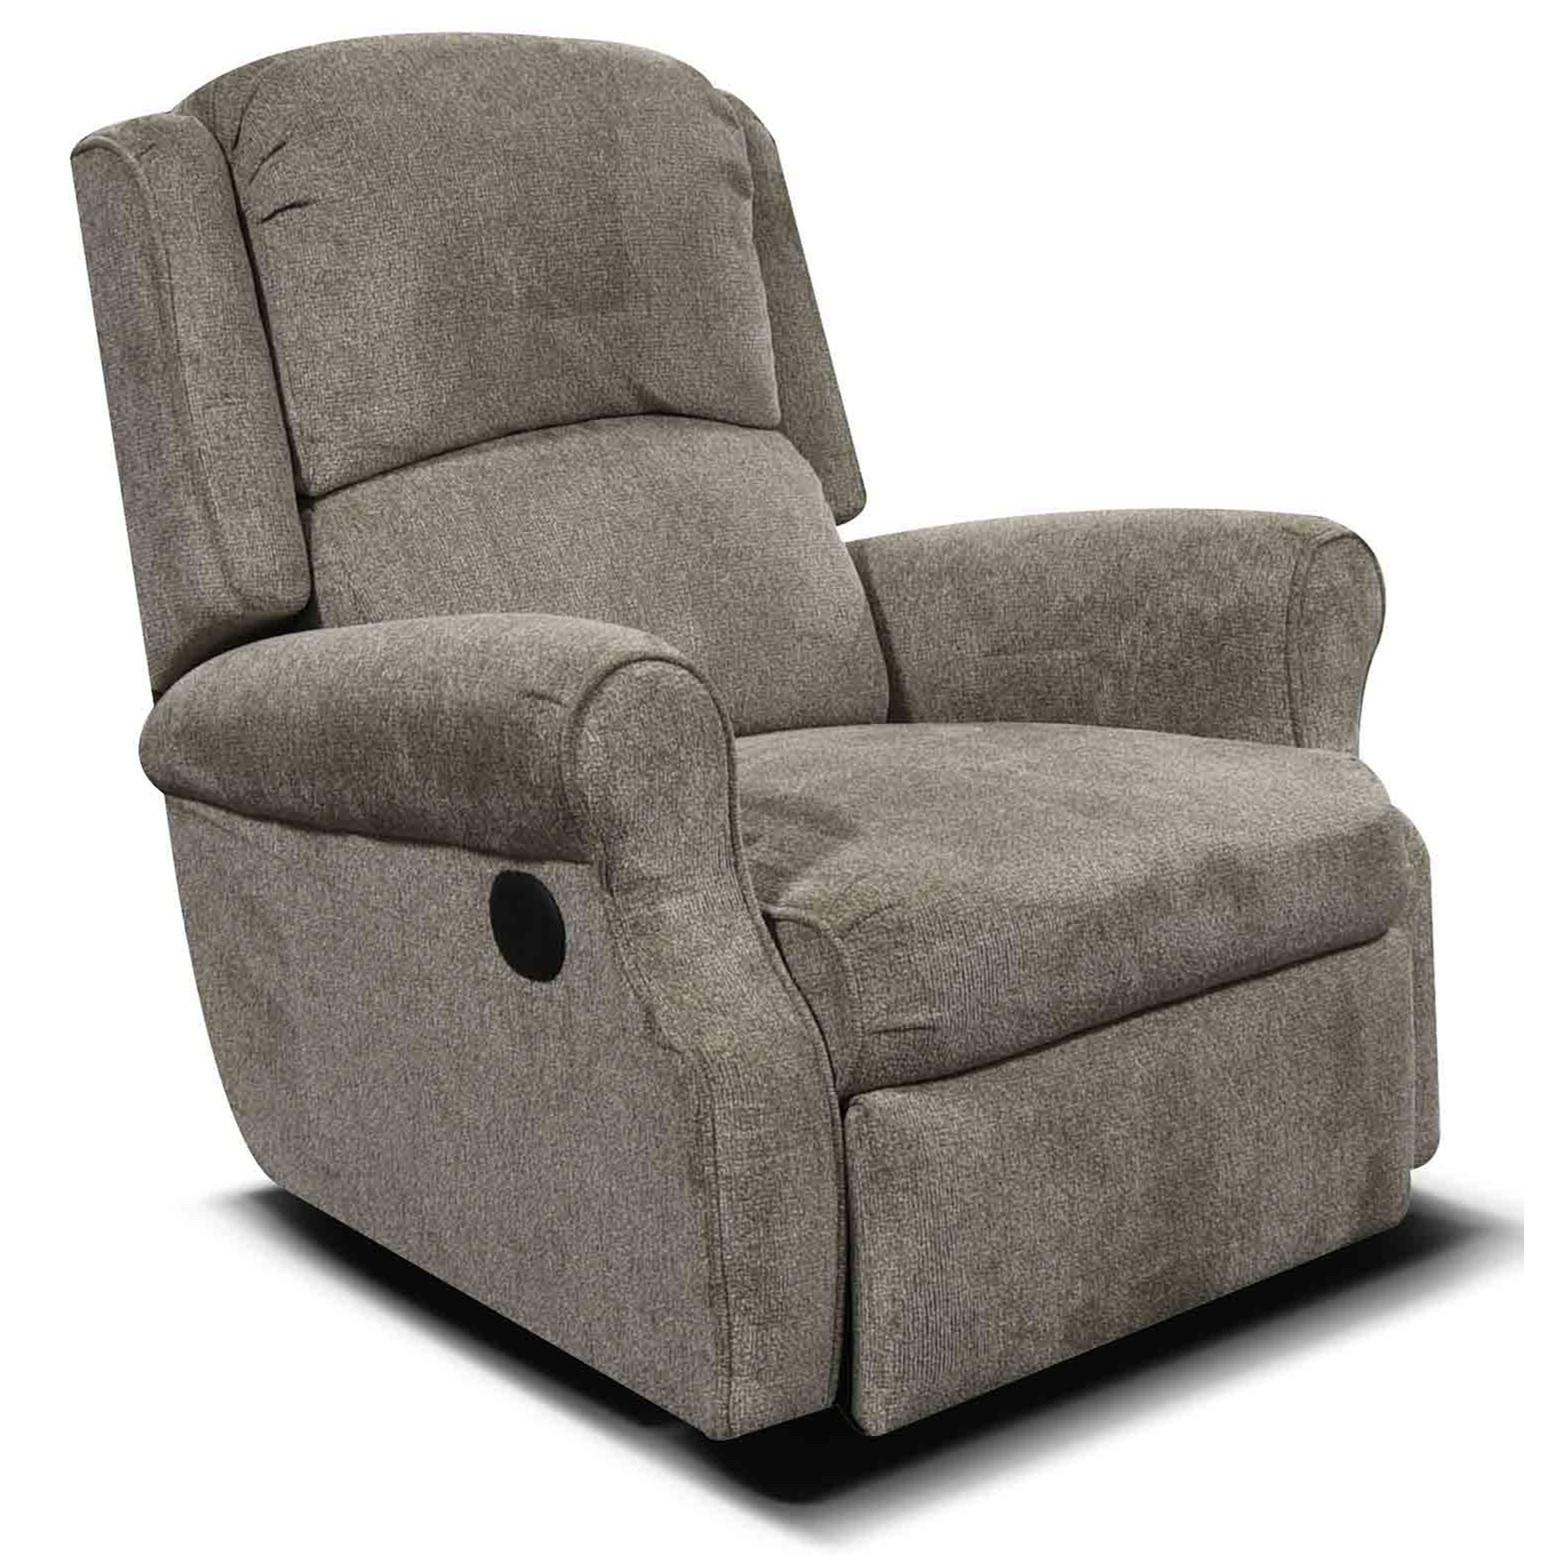 Marybeth Rocker Recliner by England at Corner Furniture